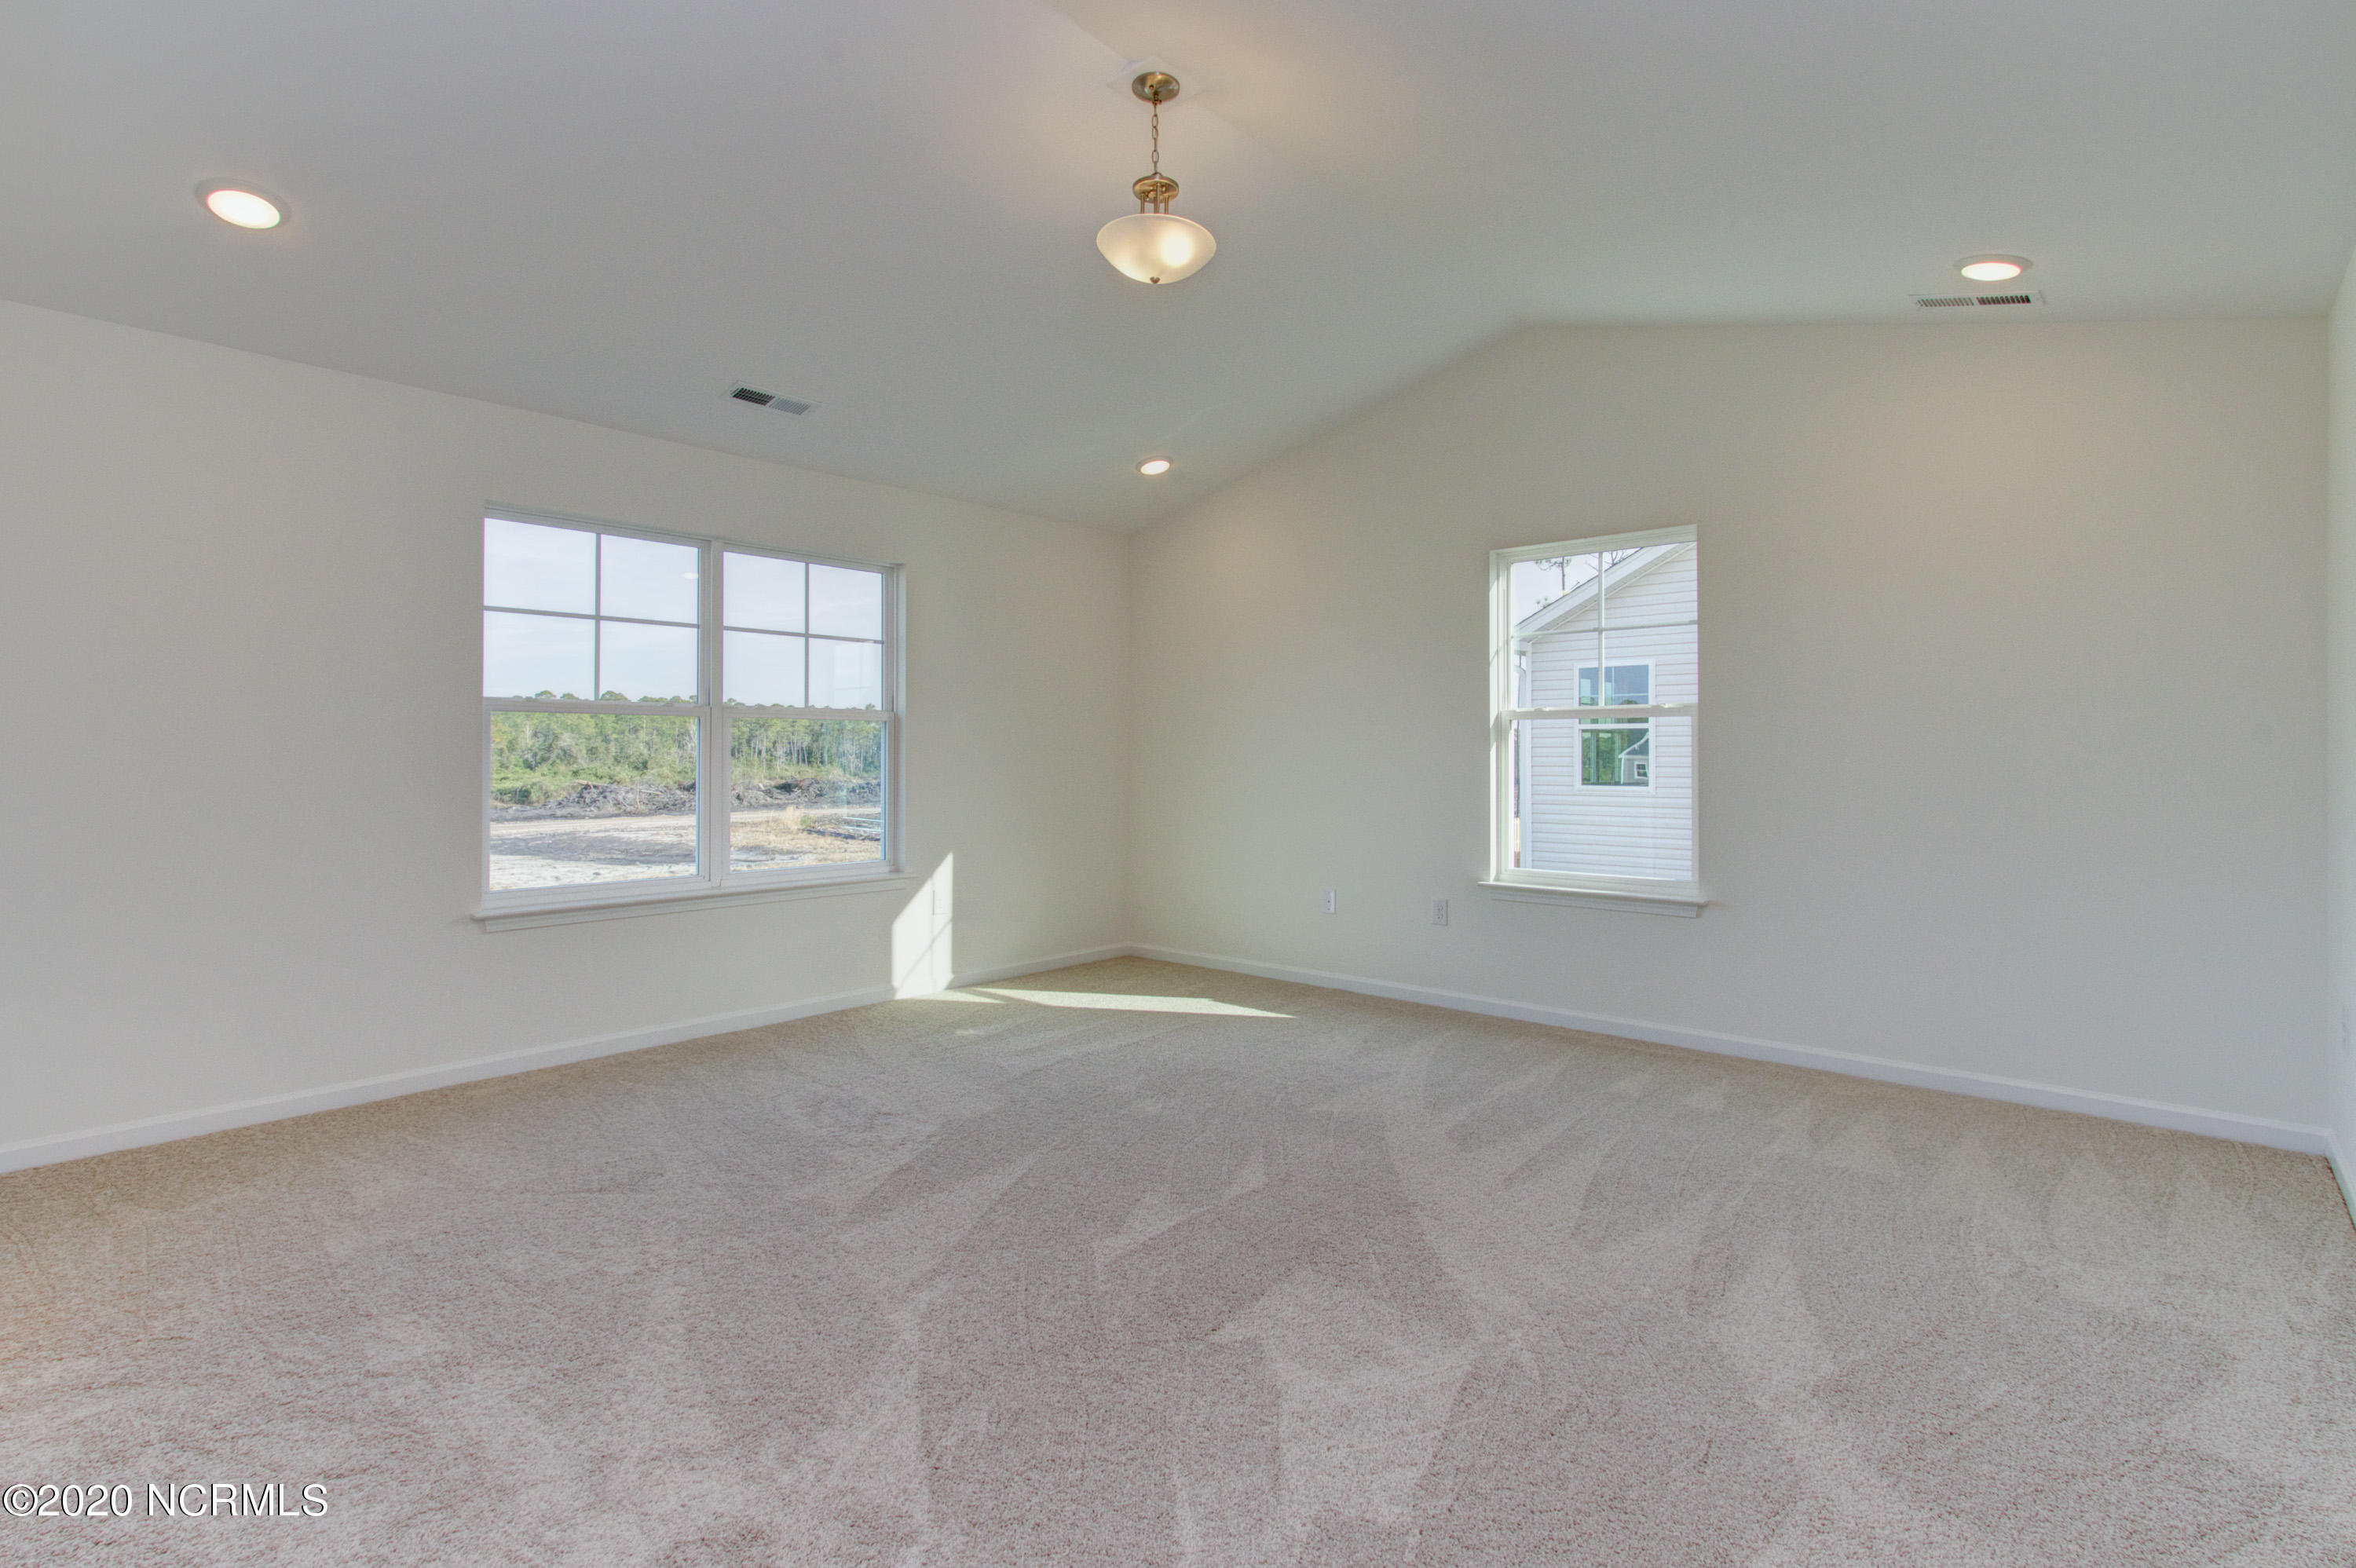 7813 Waterwillow Drive, Leland, North Carolina 28451, 4 Bedrooms Bedrooms, 8 Rooms Rooms,2 BathroomsBathrooms,Single family residence,For sale,Waterwillow,100215879